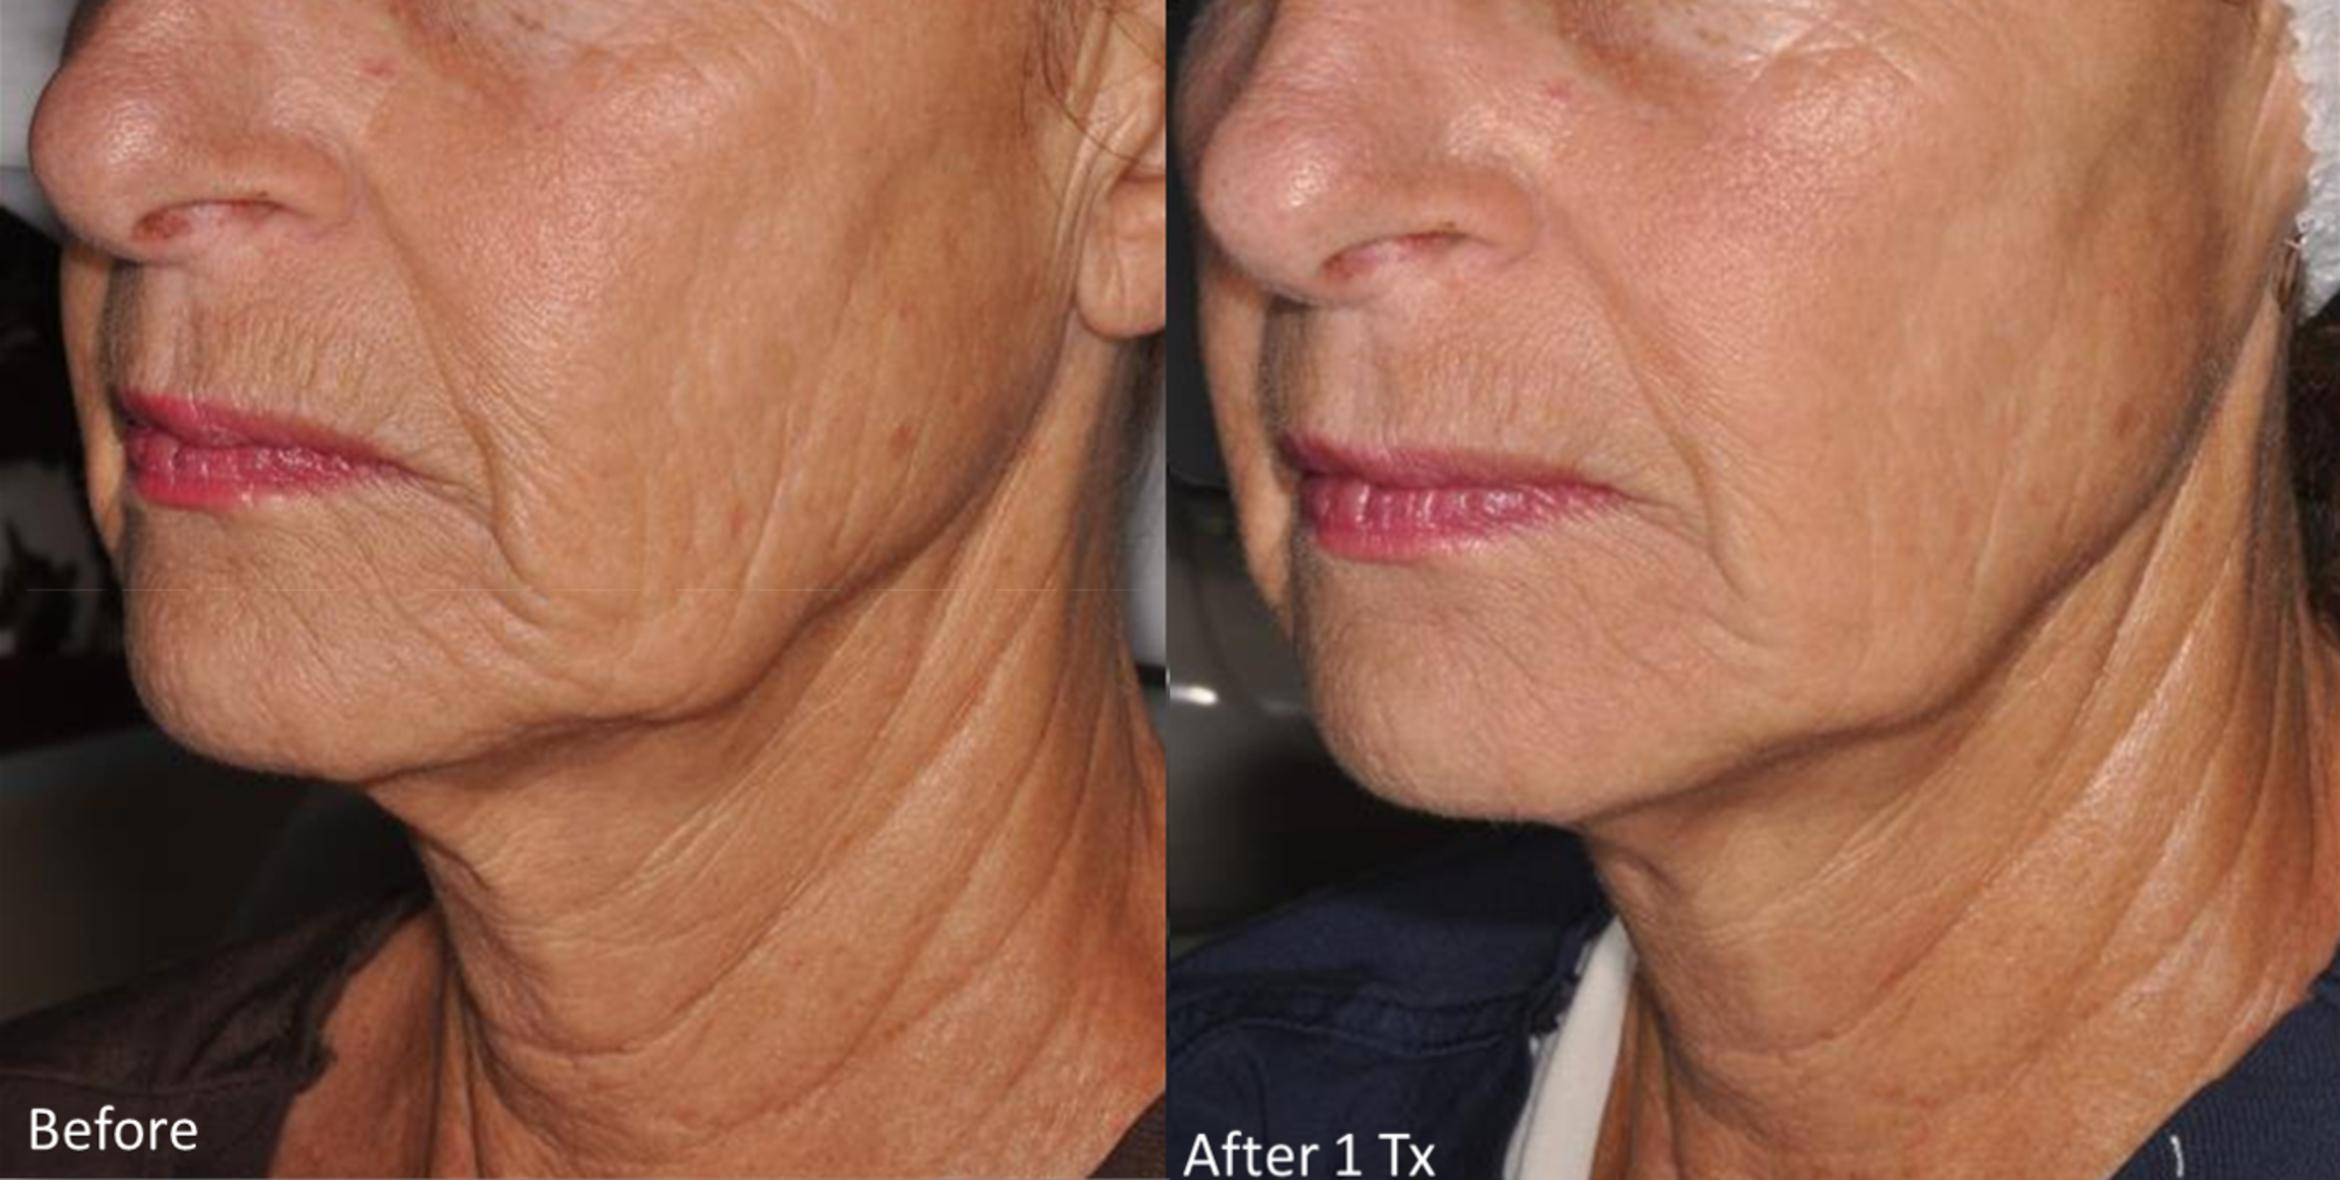 Genius® Microneedling with RF Before & After Photo Gallery